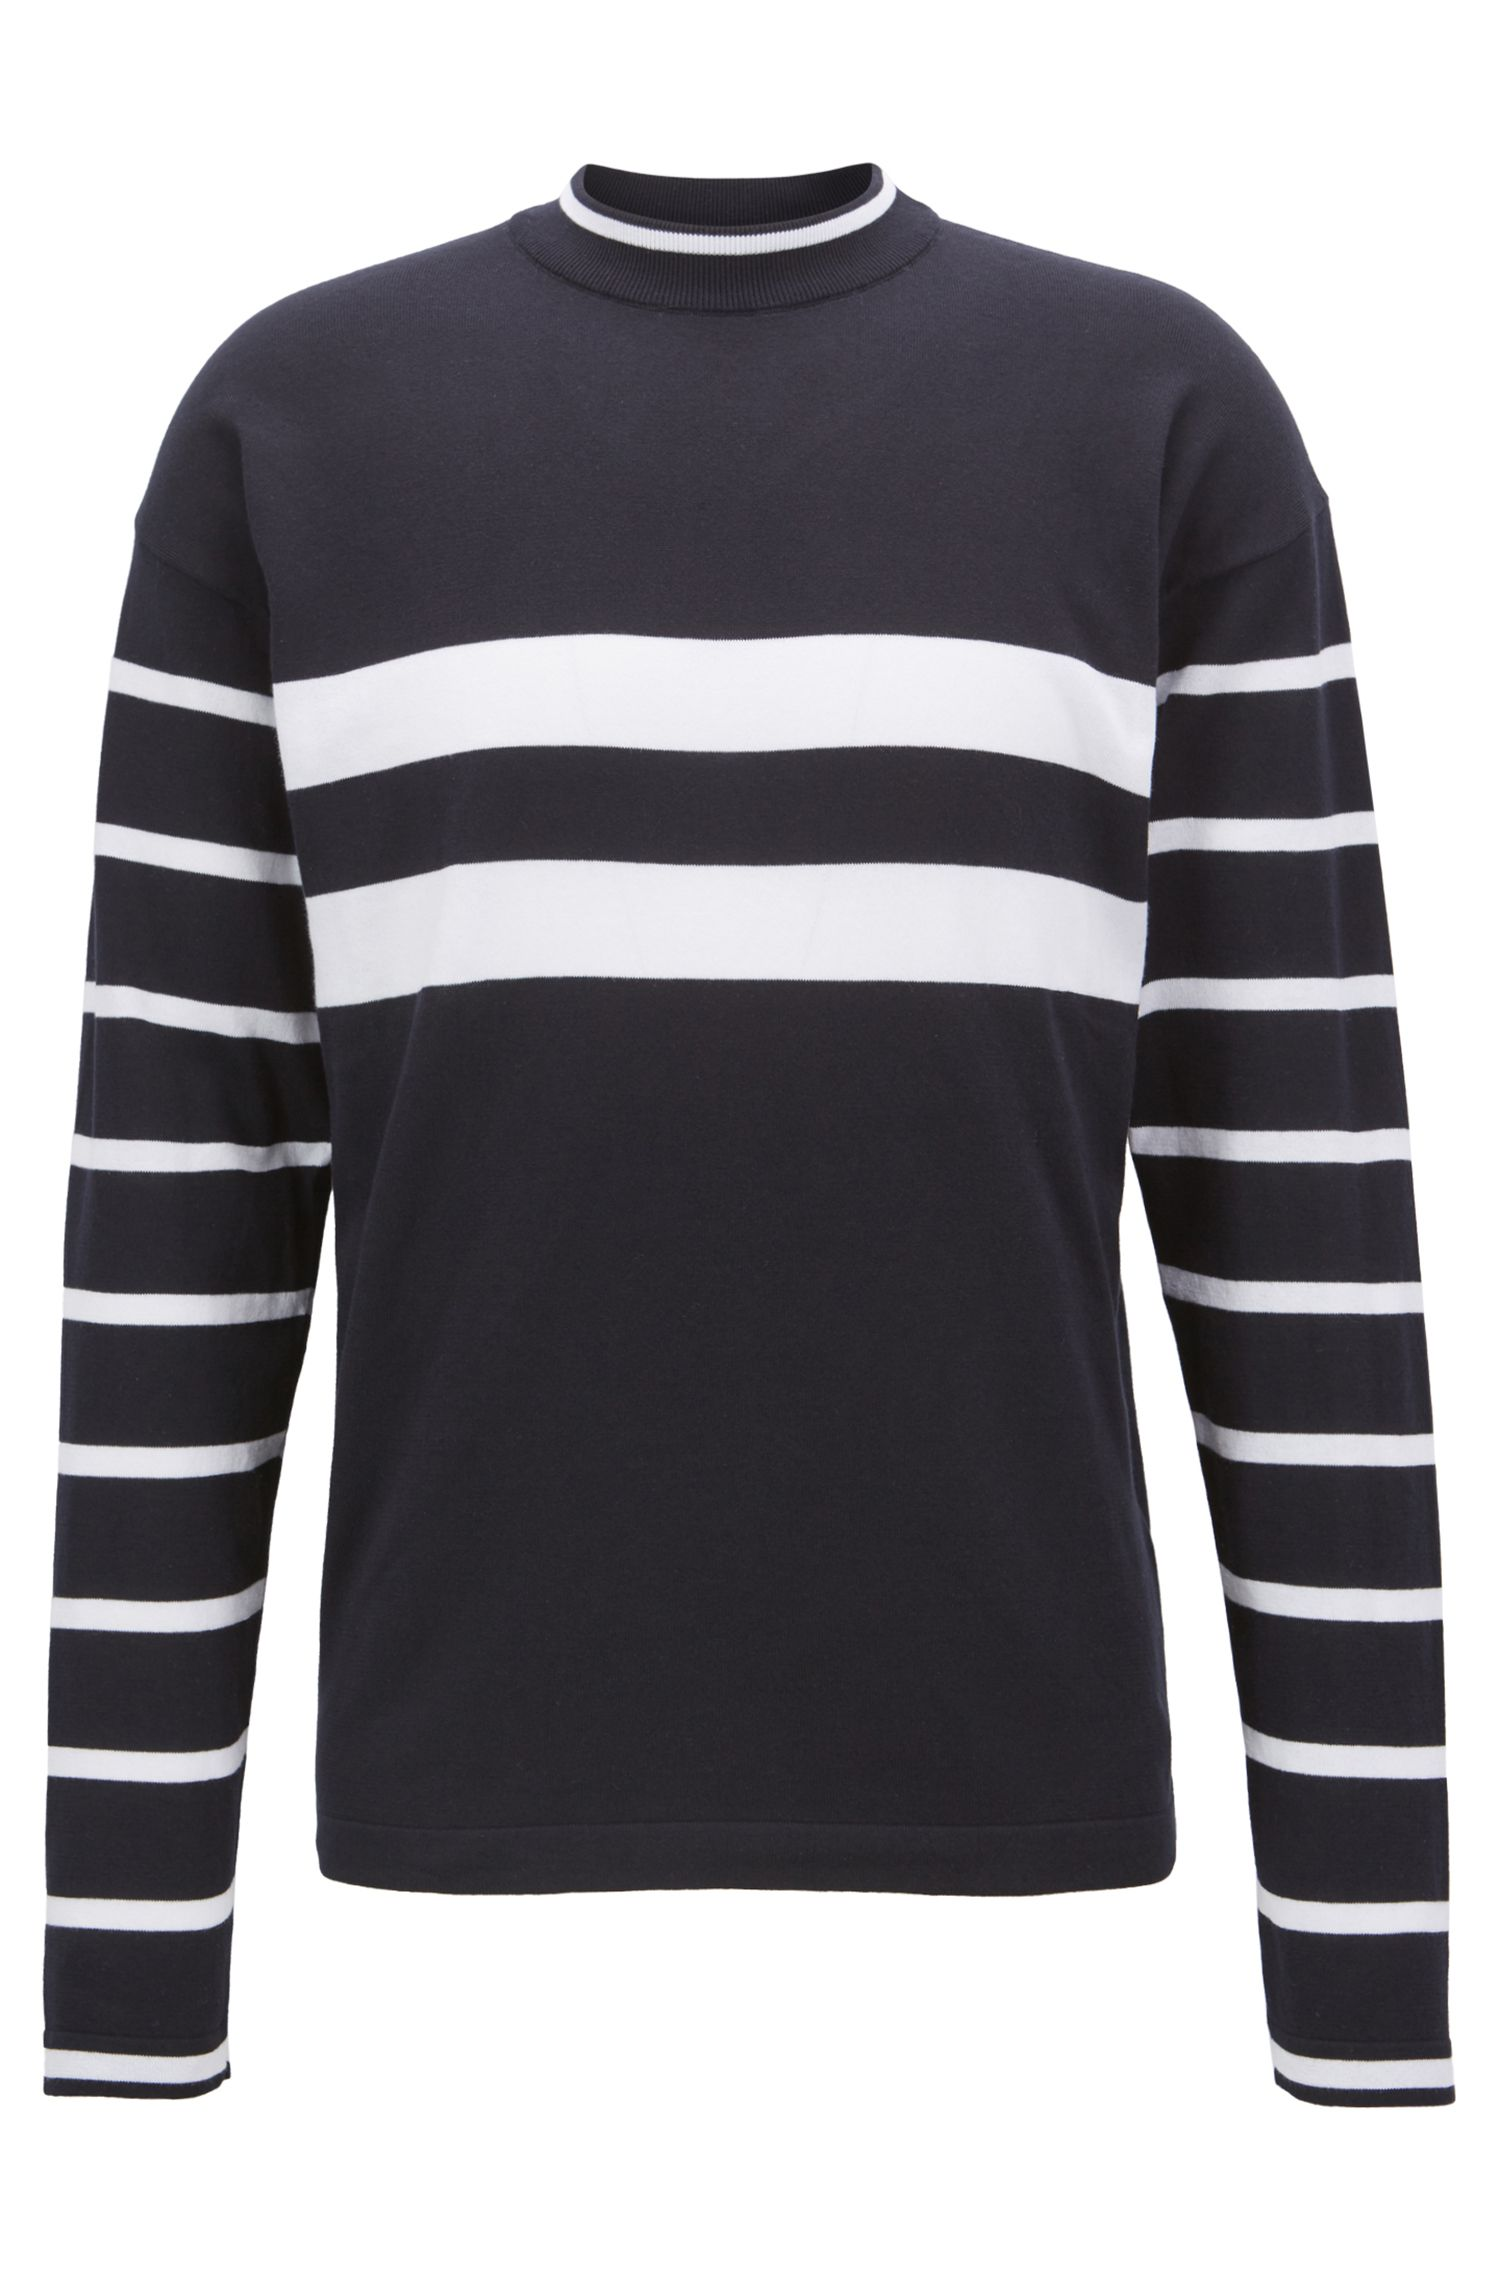 Striped crew-neck sweater in cotton jersey